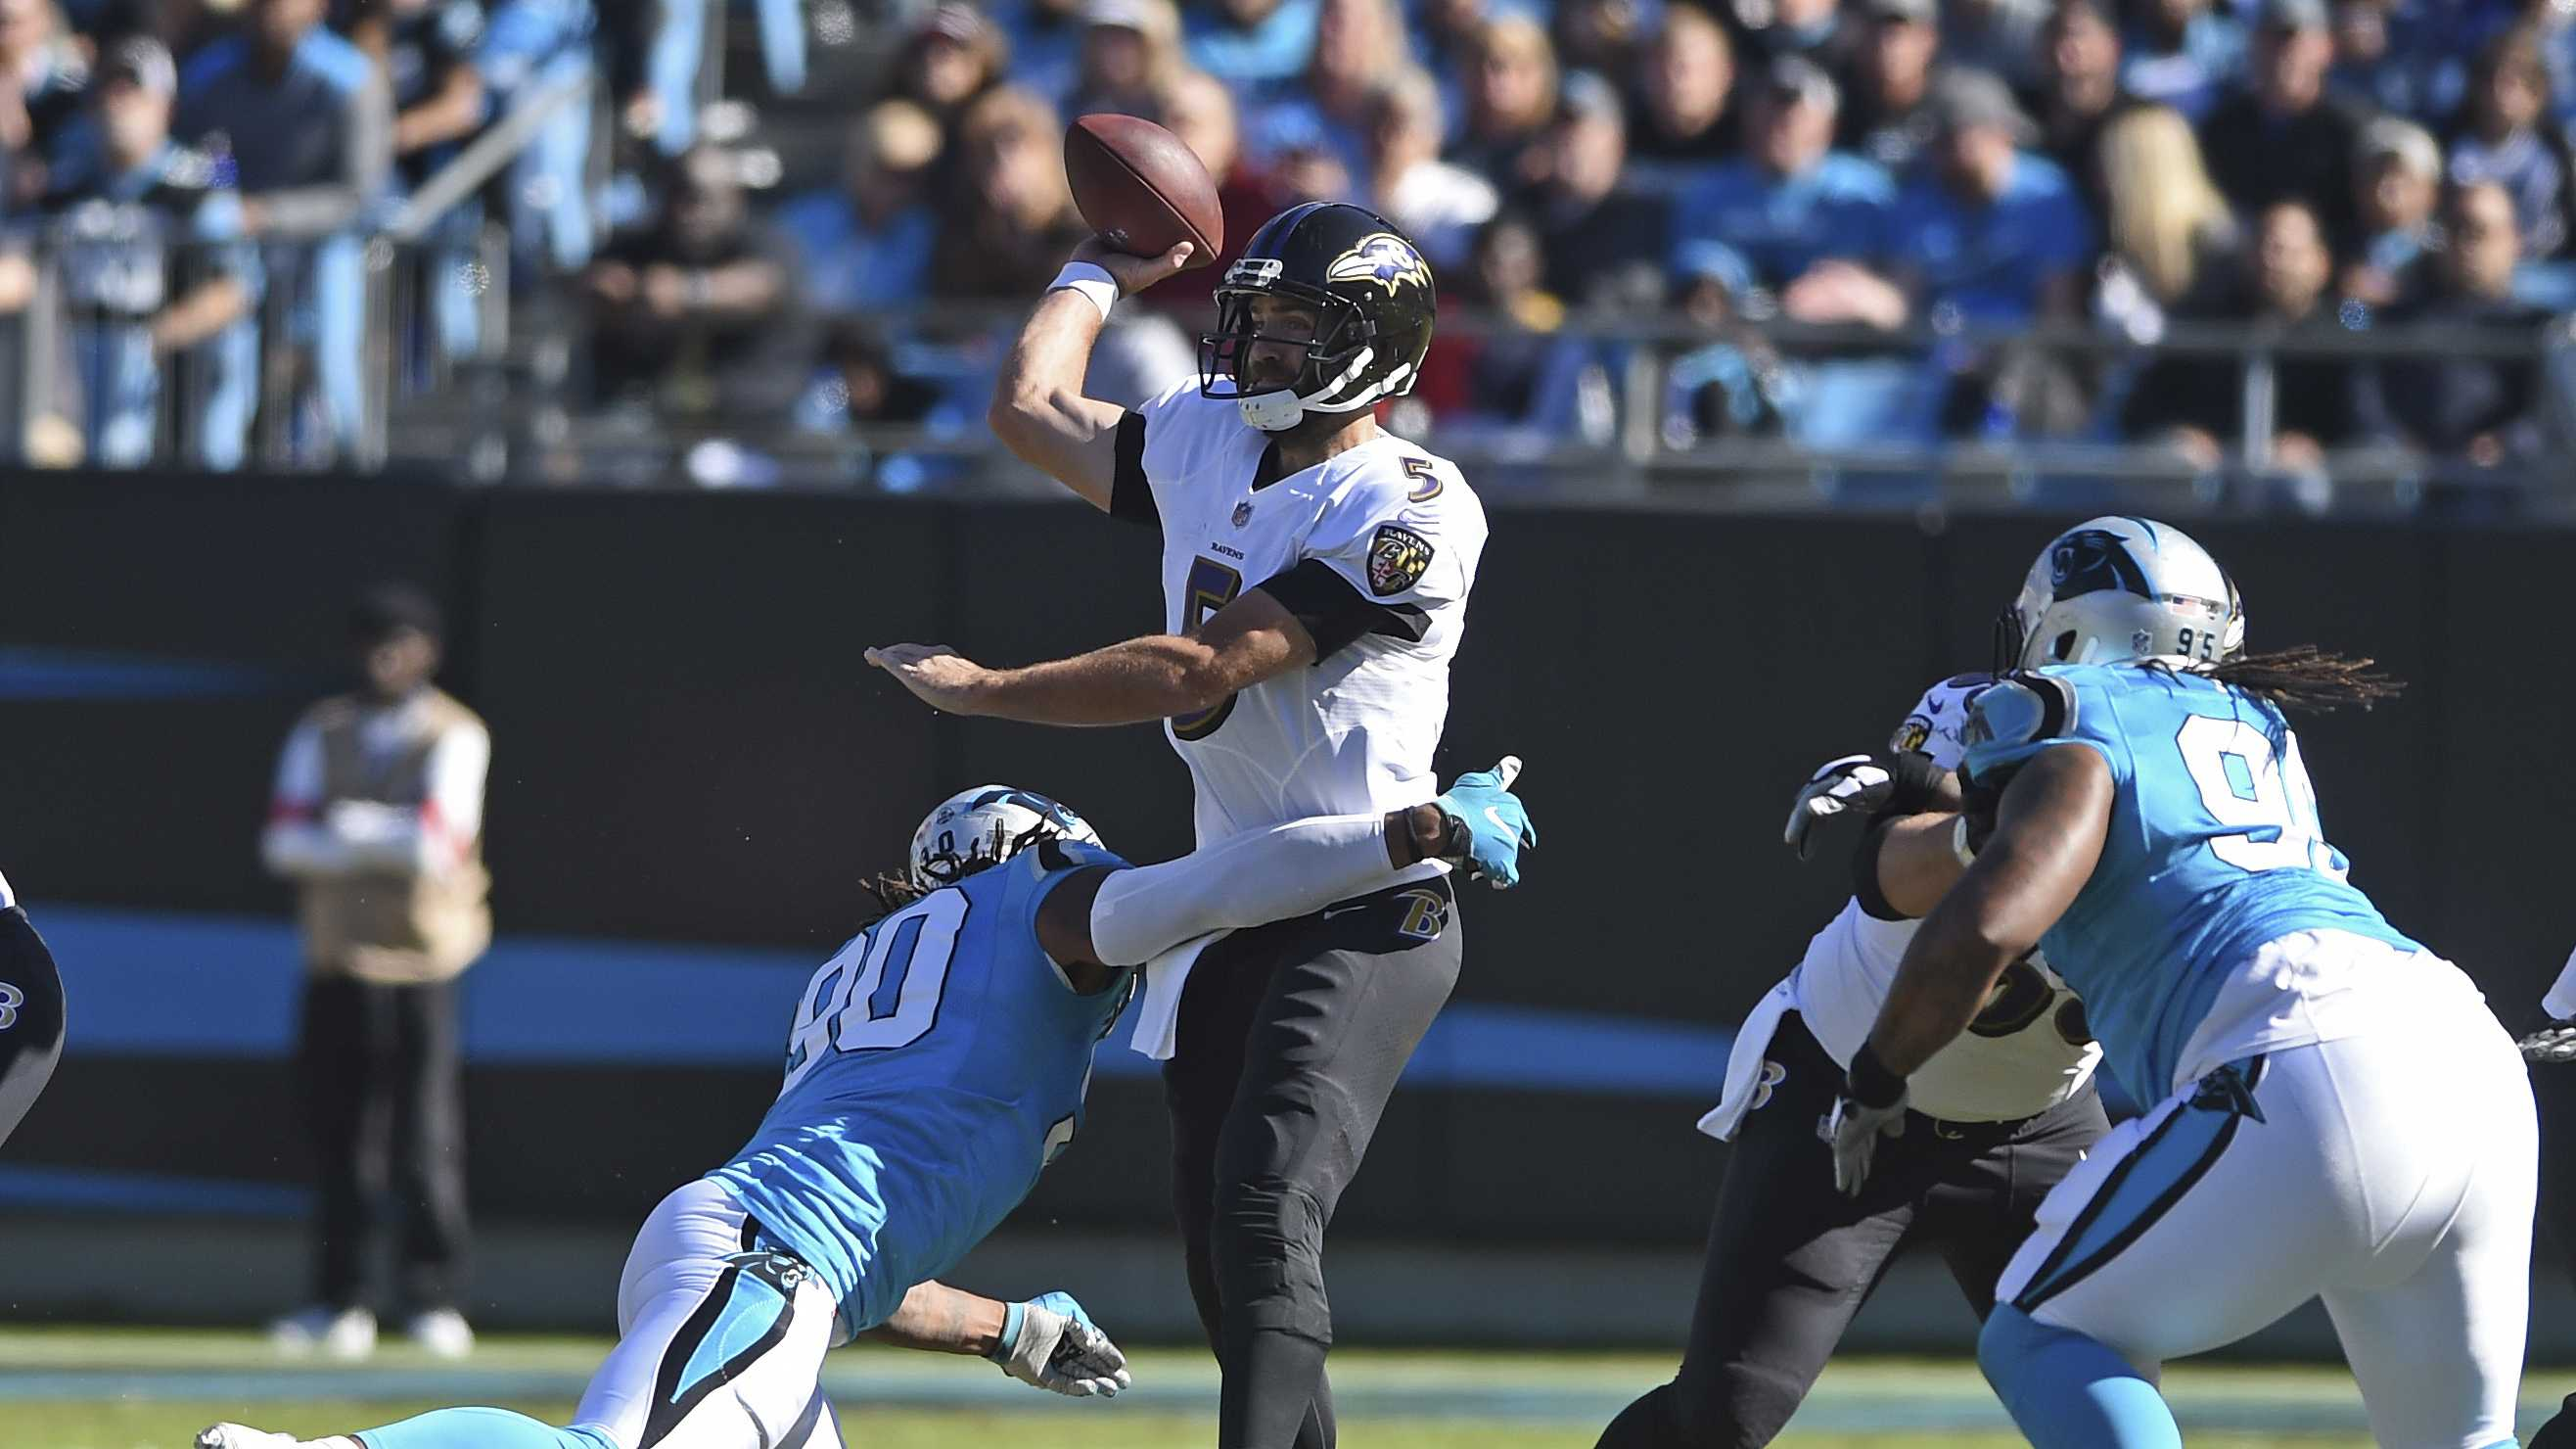 Baltimore Ravens' Joe Flacco (5) throws a pass under pressure from Carolina Panthers' Julius Peppers (90) in the second half of an NFL football game in Charlotte, N.C., Sunday, Oct. 28, 2018. (AP Photo/Mike McCarn)